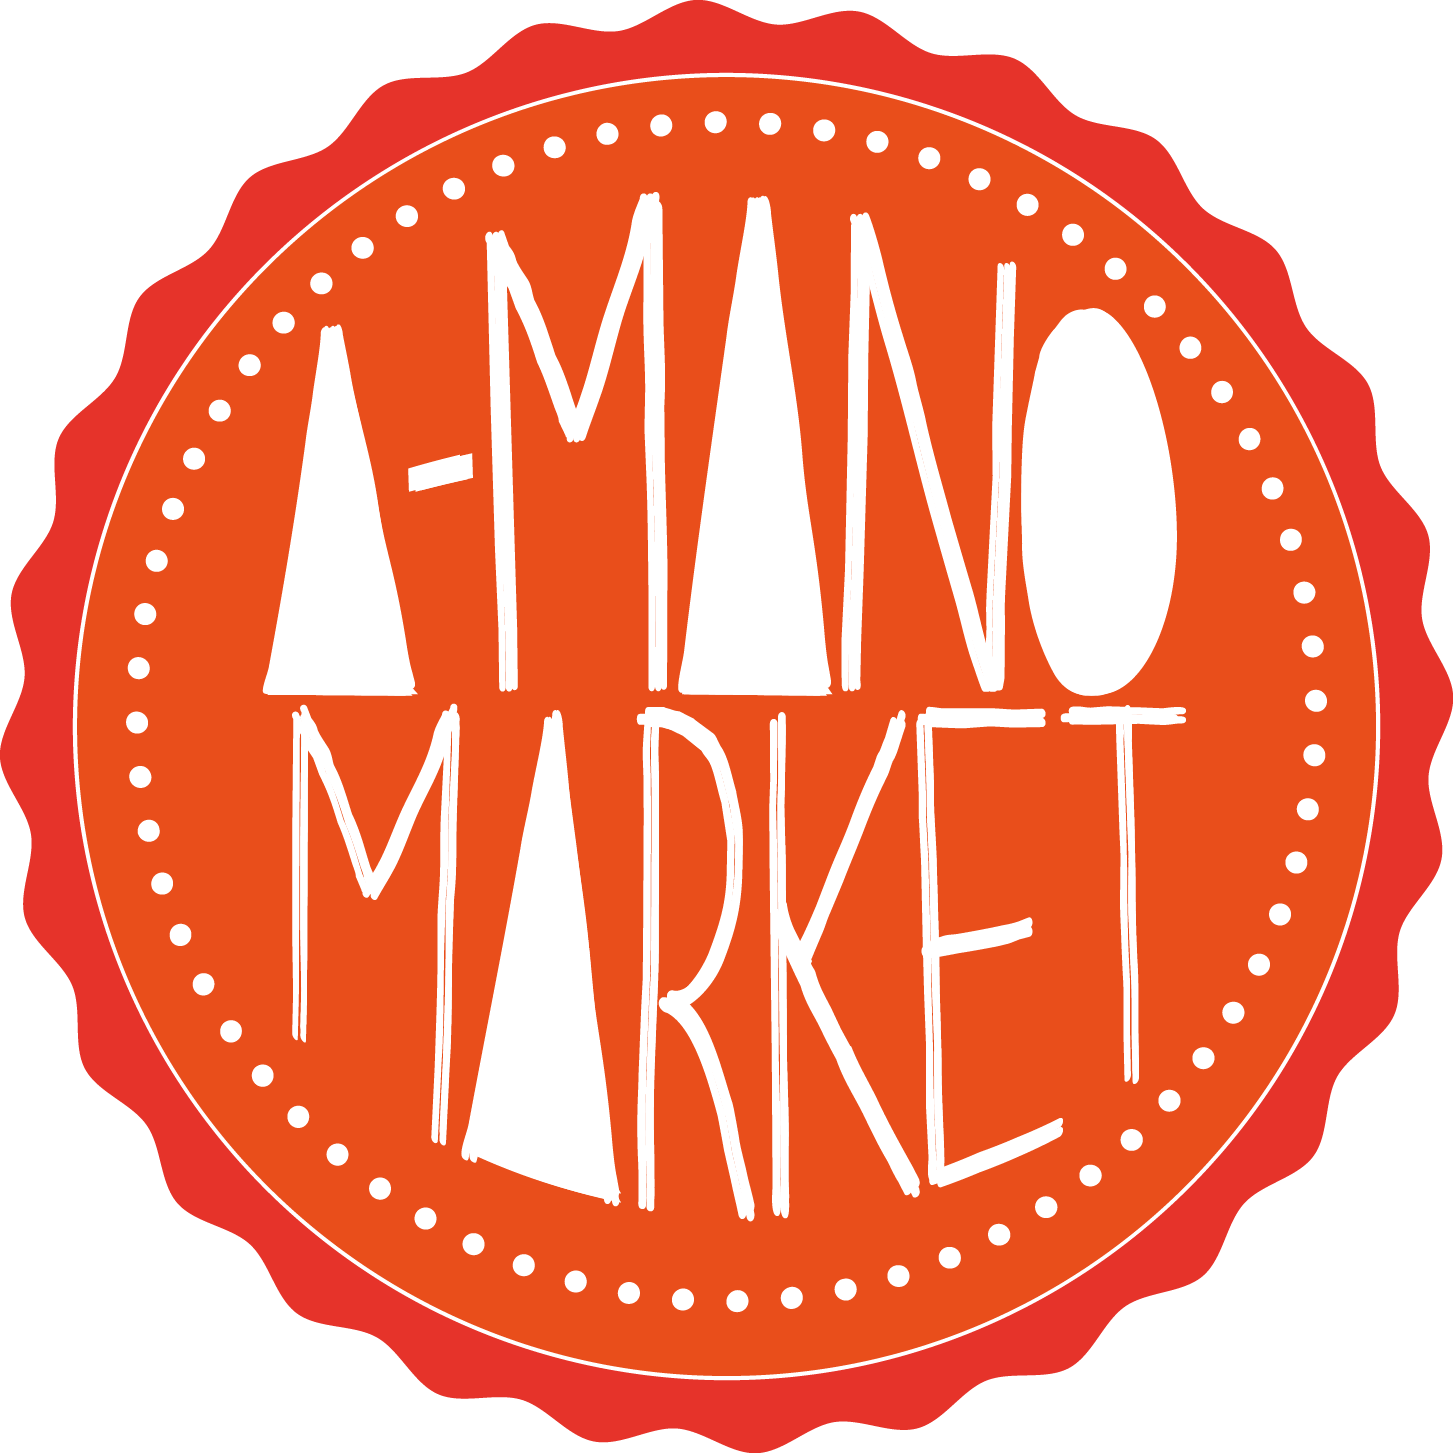 Sello A-mano market